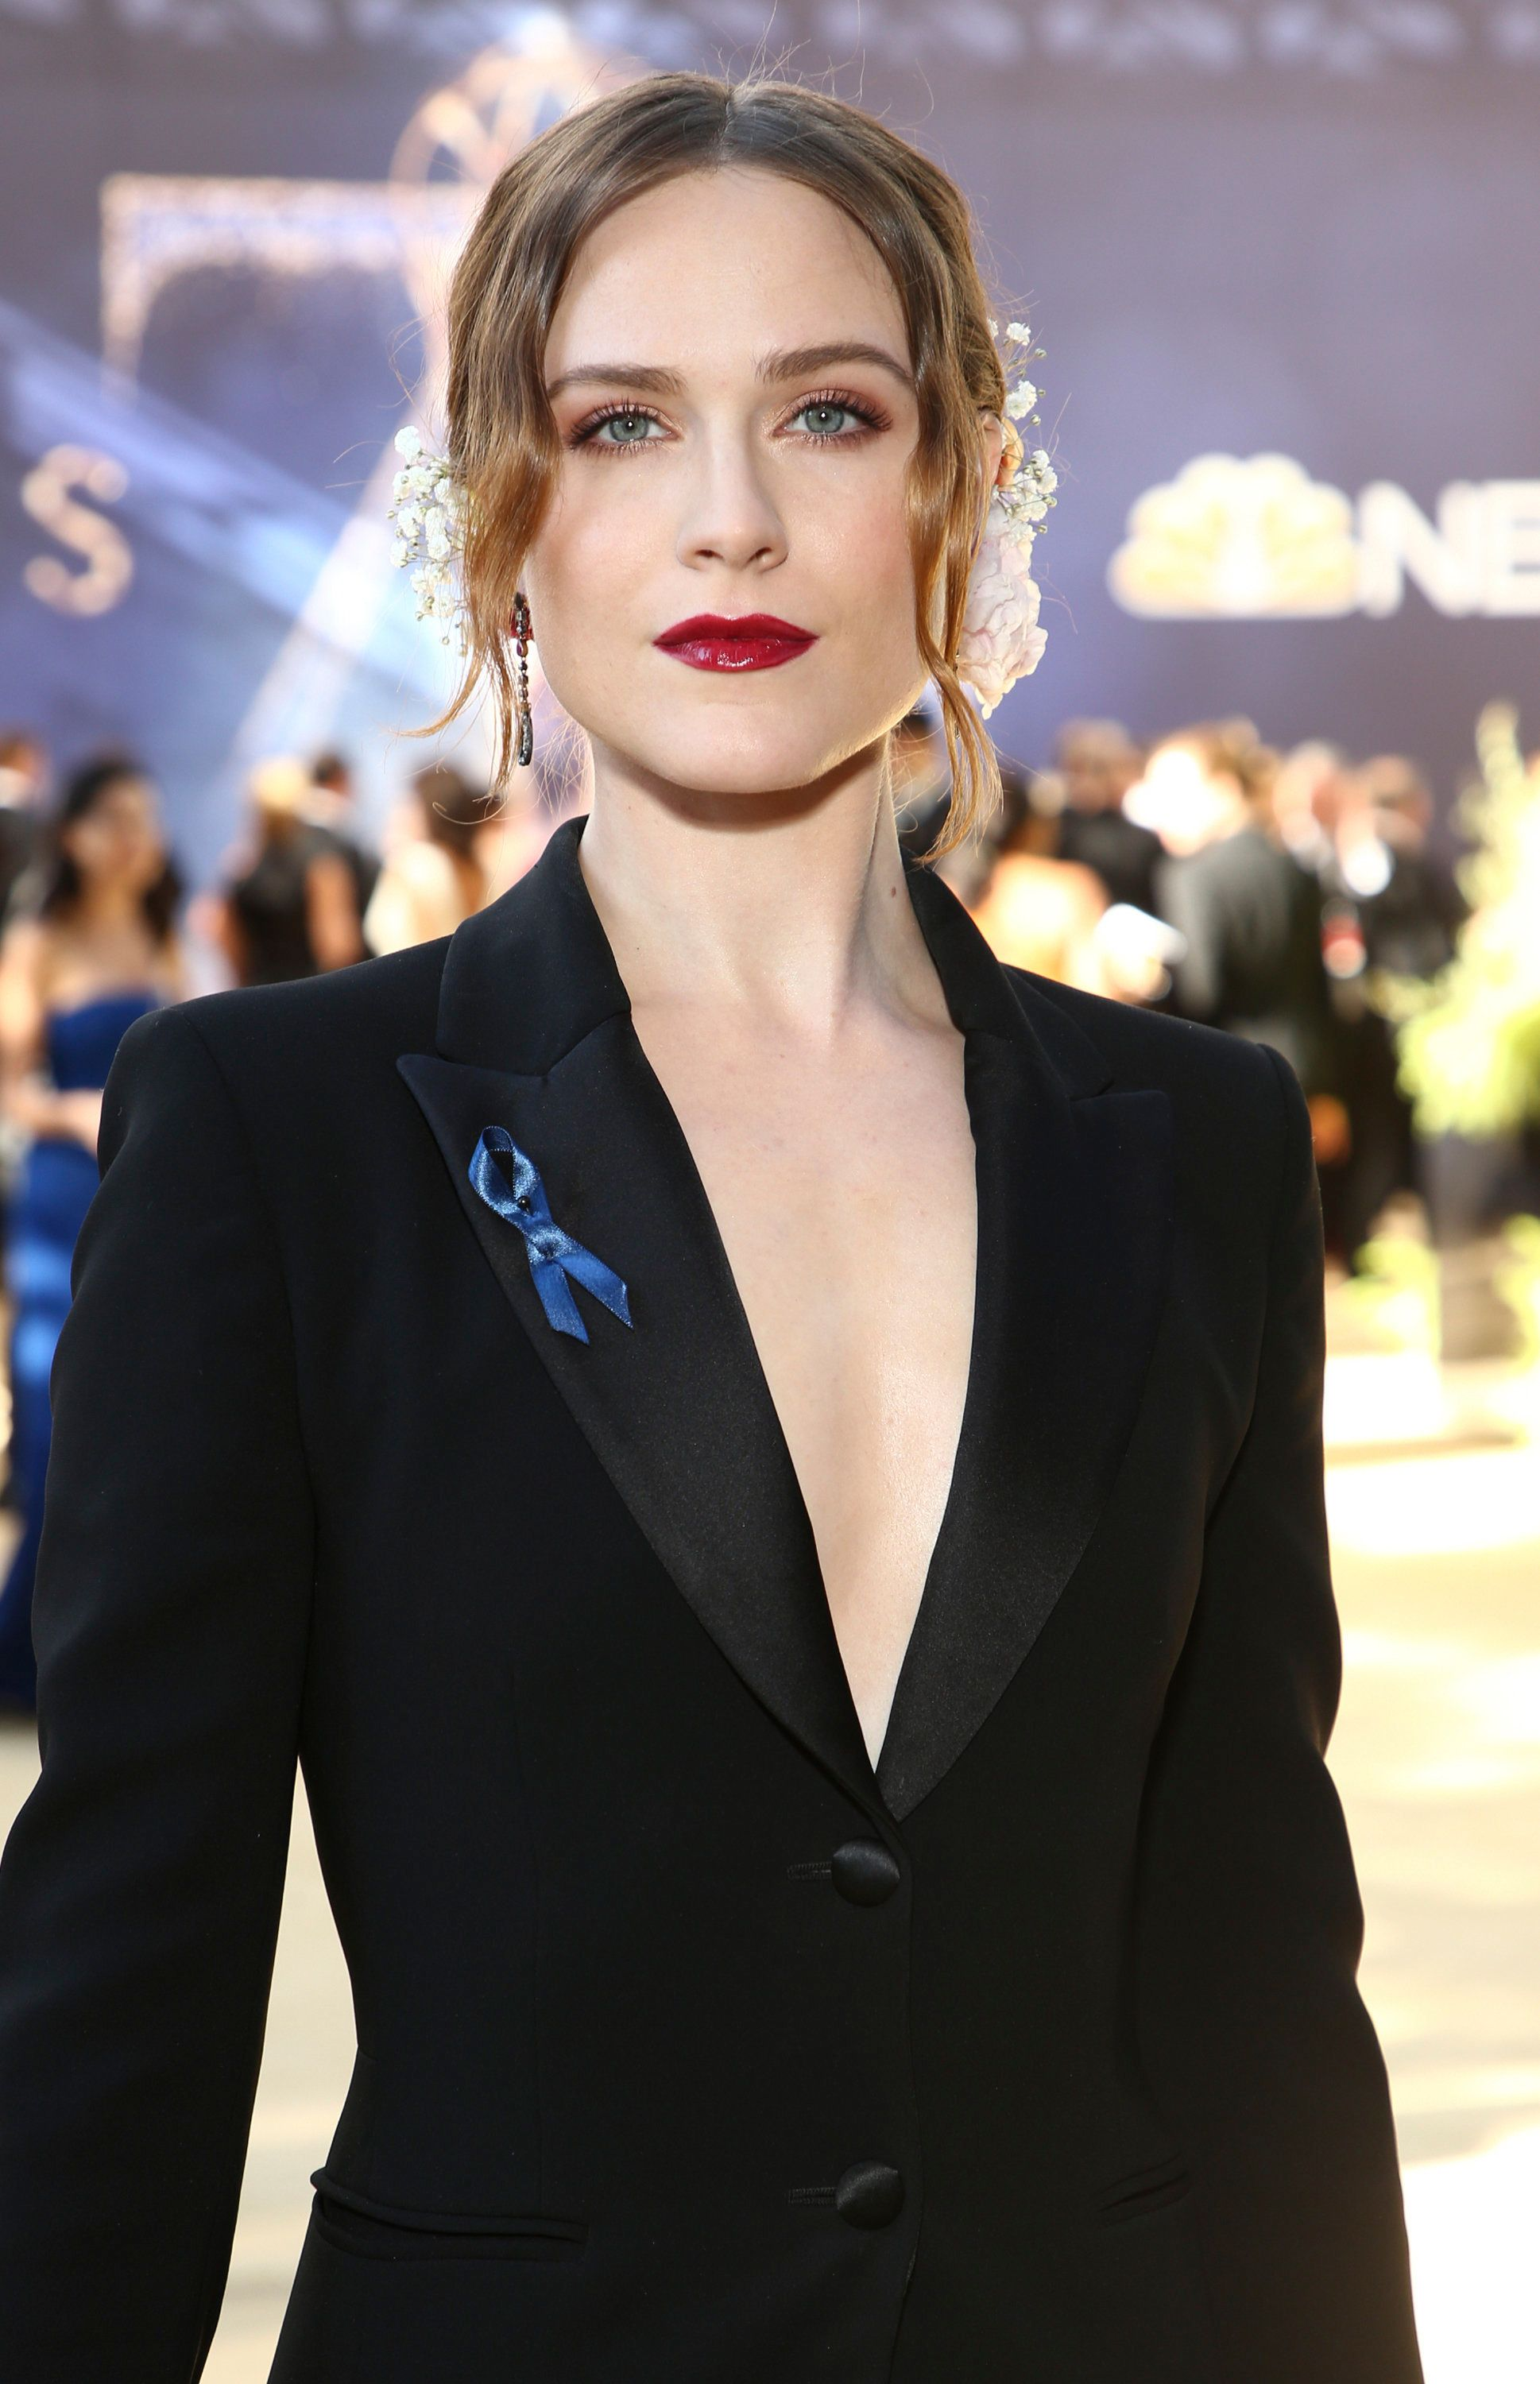 Evan Rachel Wood arrives at the 70th Primetime Emmy Awards on Monday, Sept. 17, 2018, at the Microsoft Theater in Los Angeles. (Photo by John Salangsang/Invision for the Television Academy/AP Images)